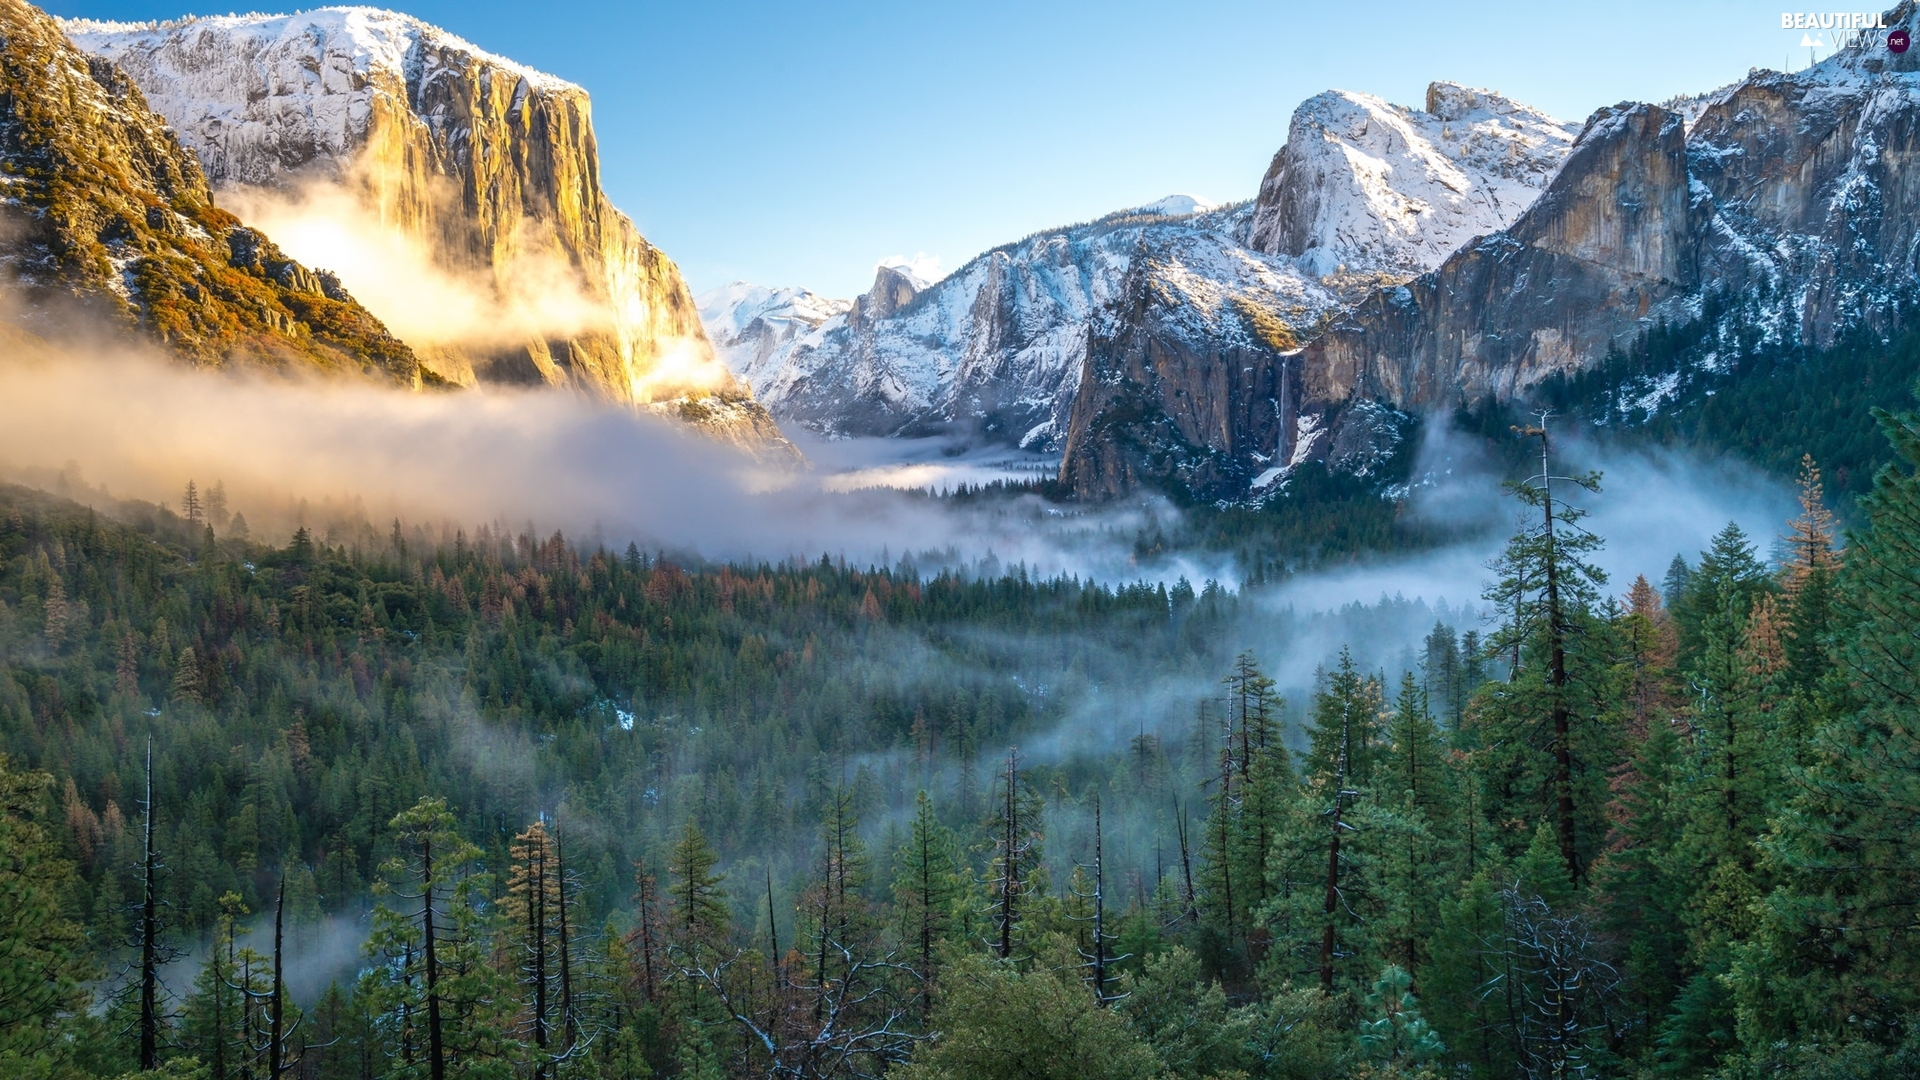 Yosemite National Park, The United States, Fog, clouds, Sierra Nevada Mountains, State of California